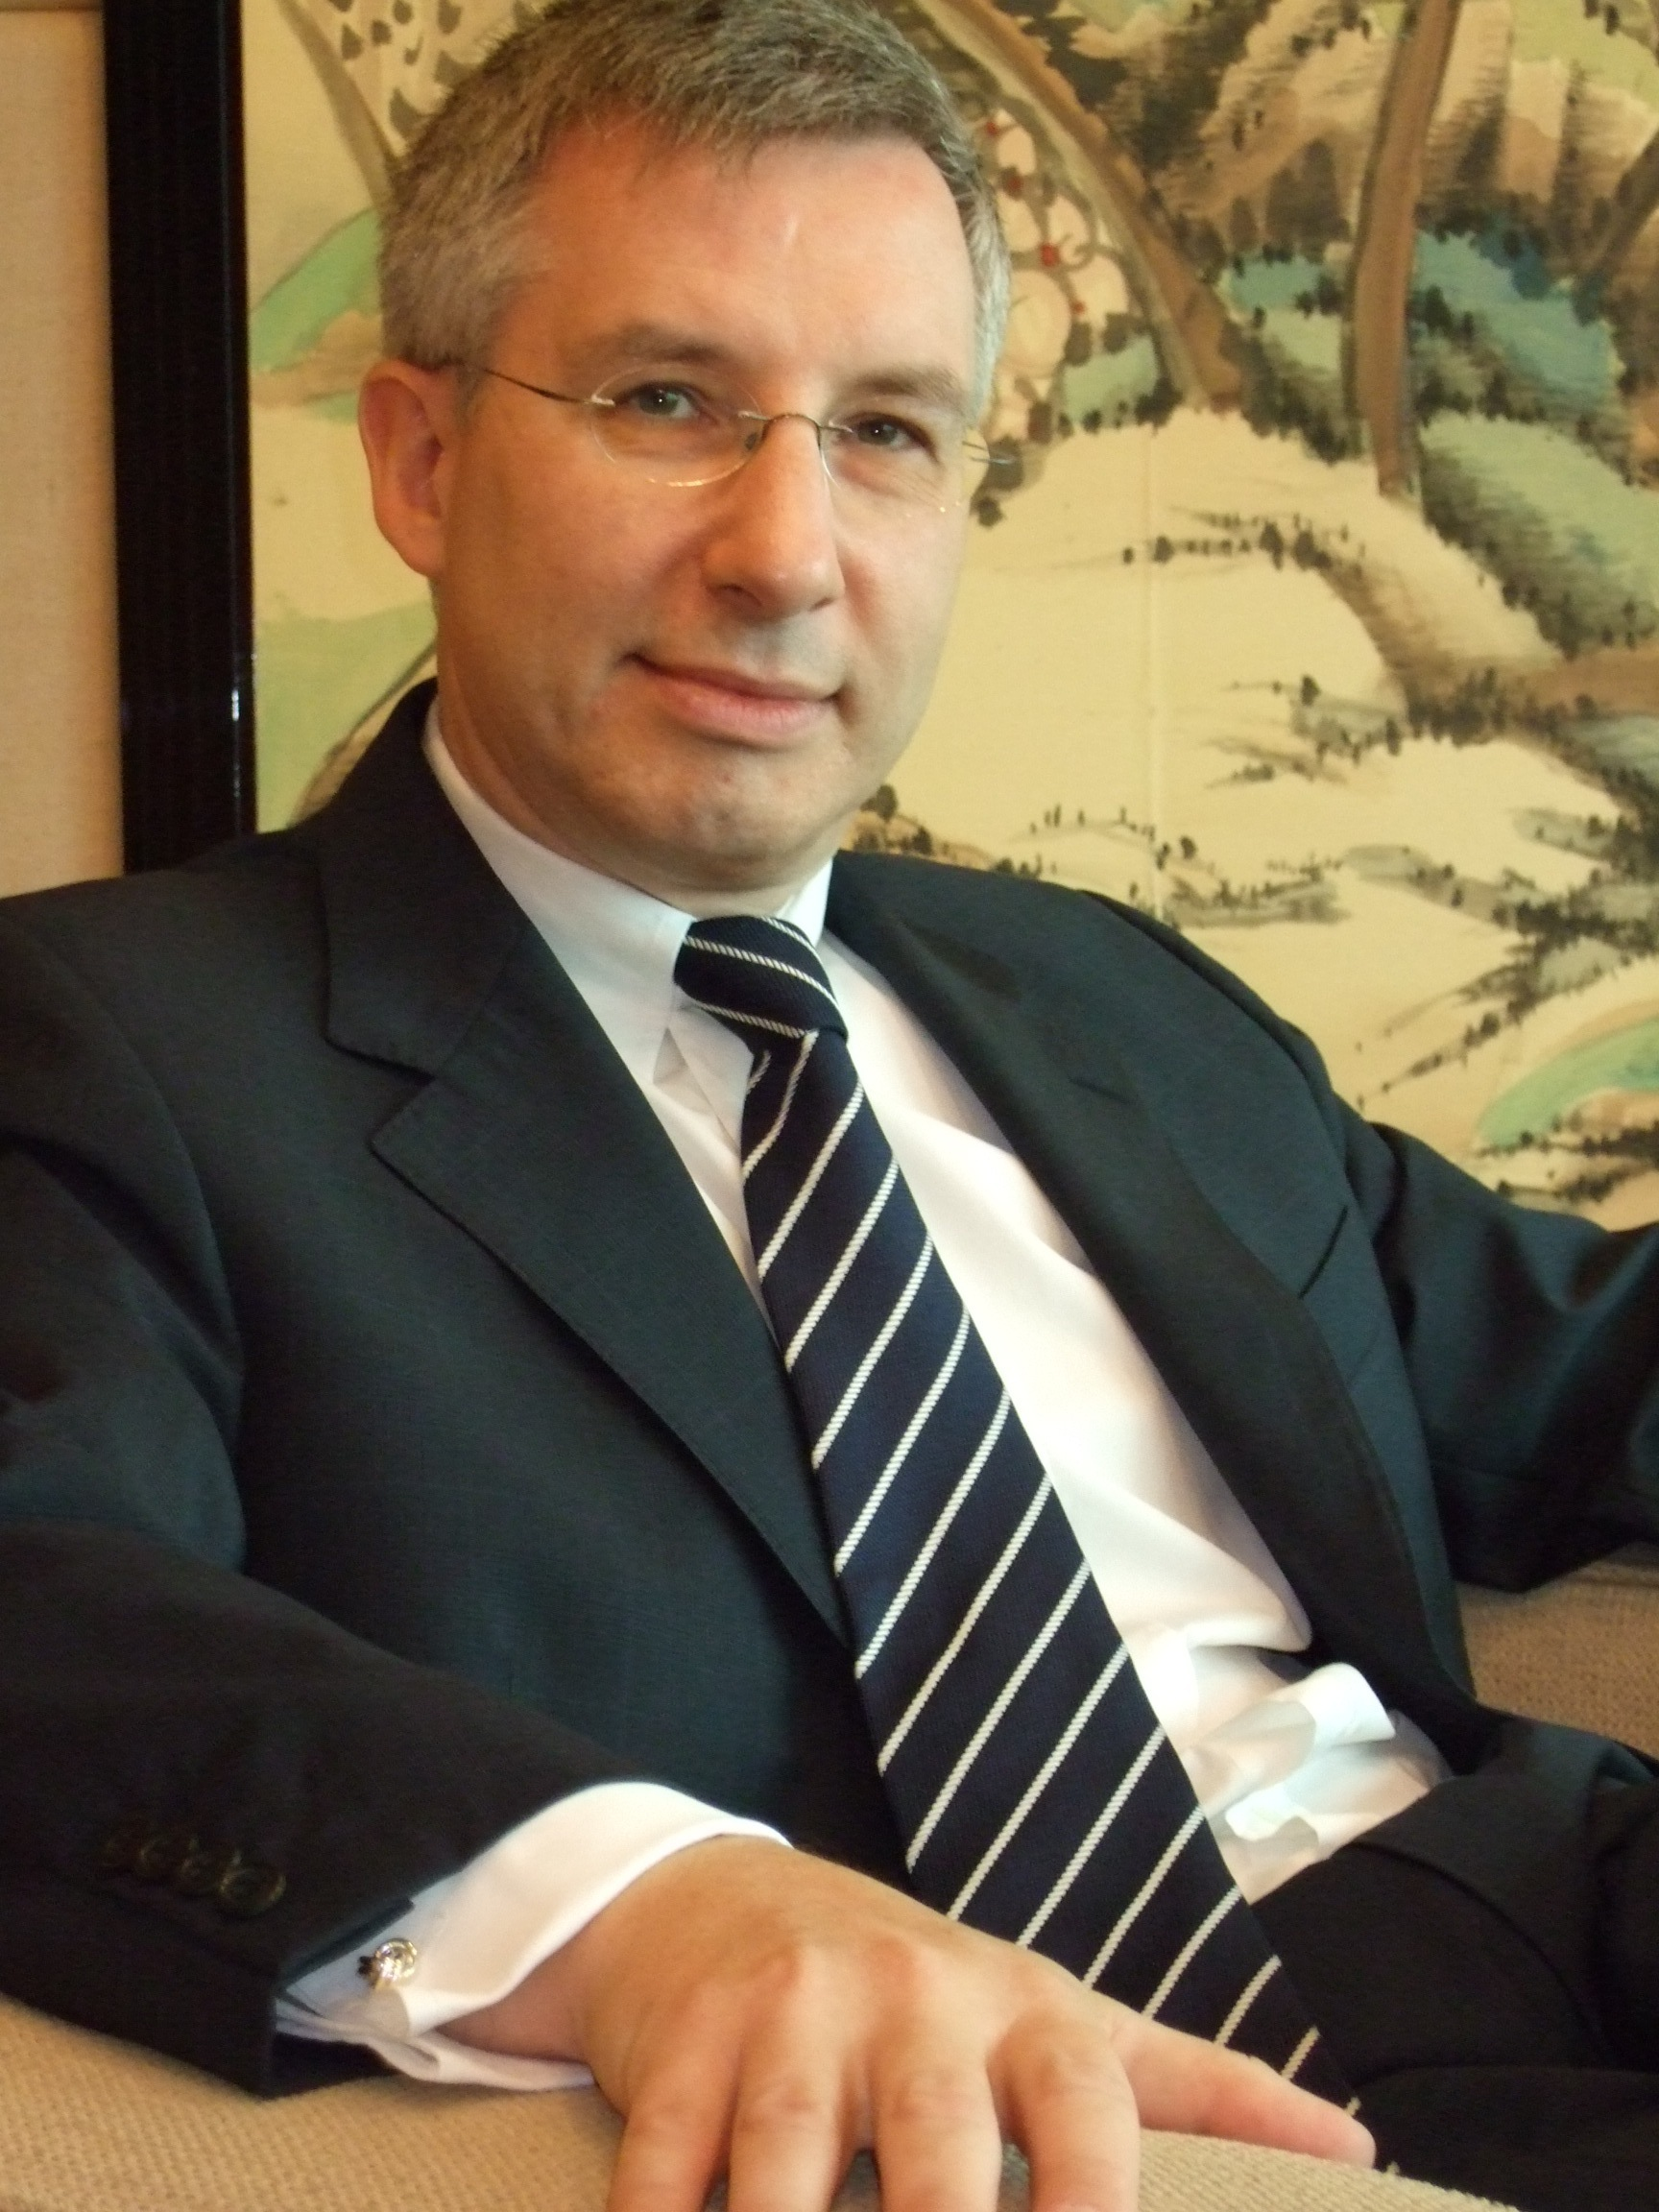 Jean-Claude Poimboeuf, director of the French Institute in Taipei